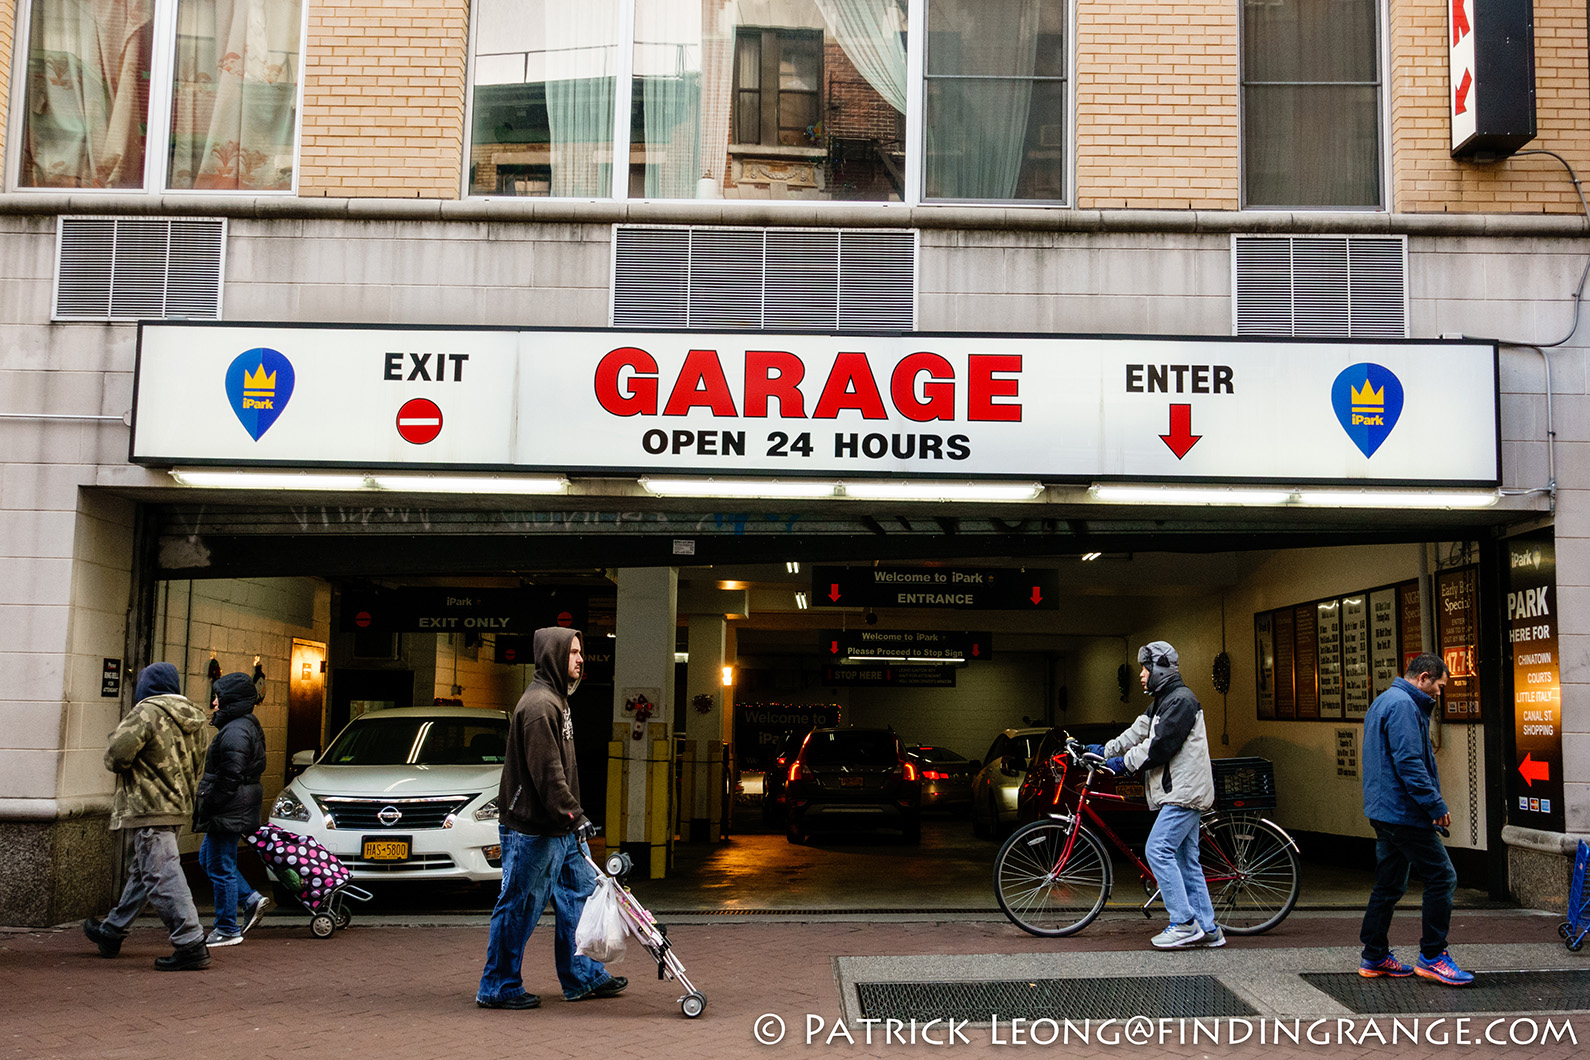 New york city parking garages floors doors interior for Ny city parking garages